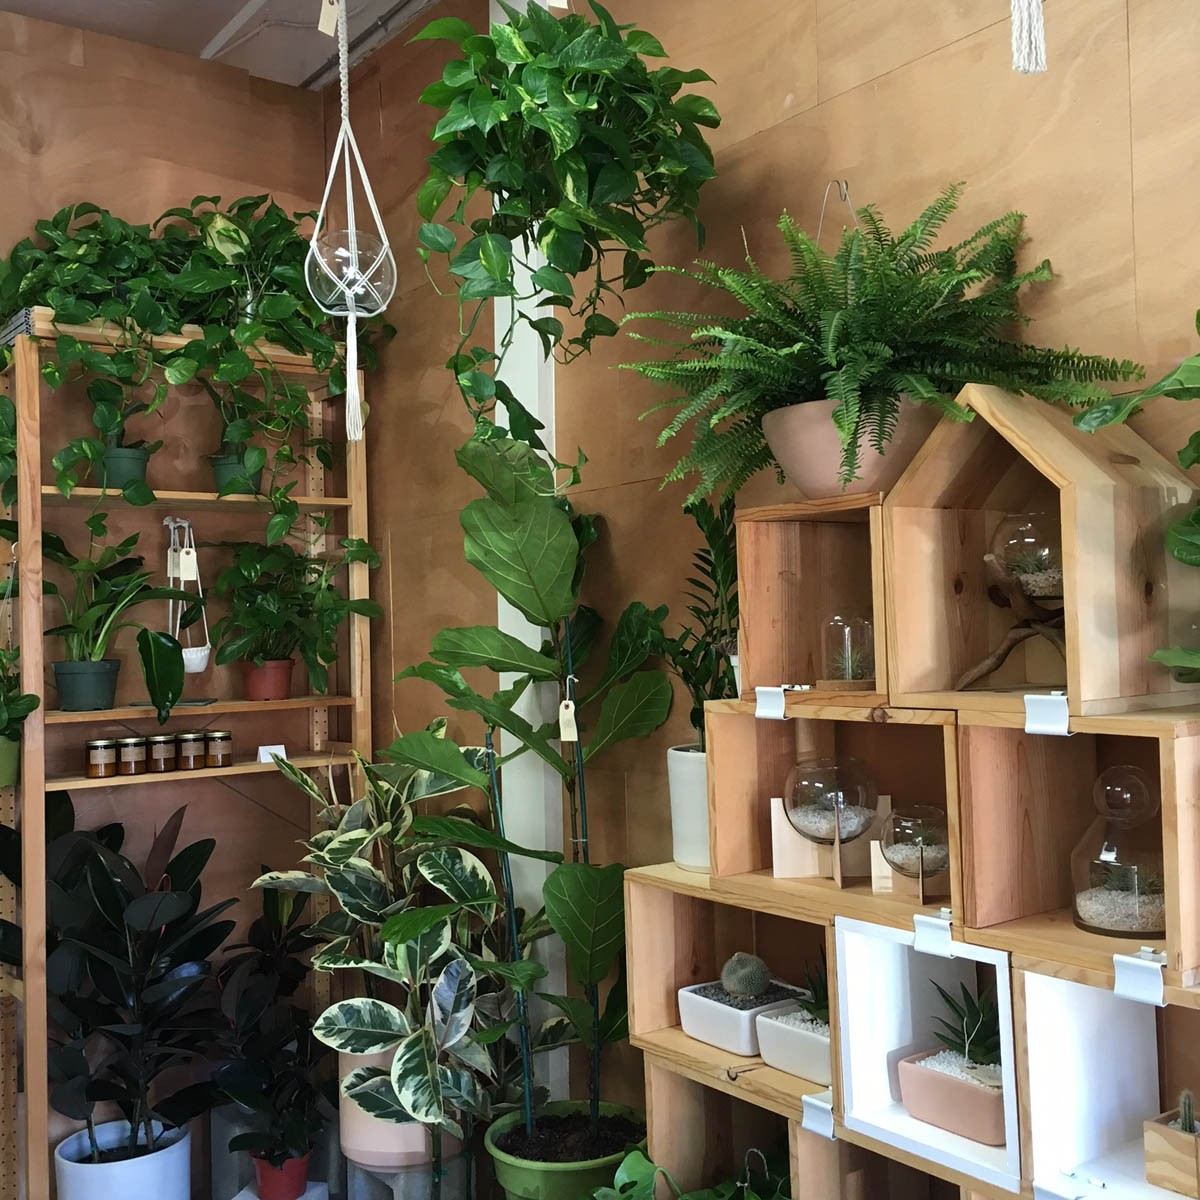 Sensational Peacock Co Offers Hip House Plants From Its Long Beach Home Remodeling Inspirations Basidirectenergyitoicom